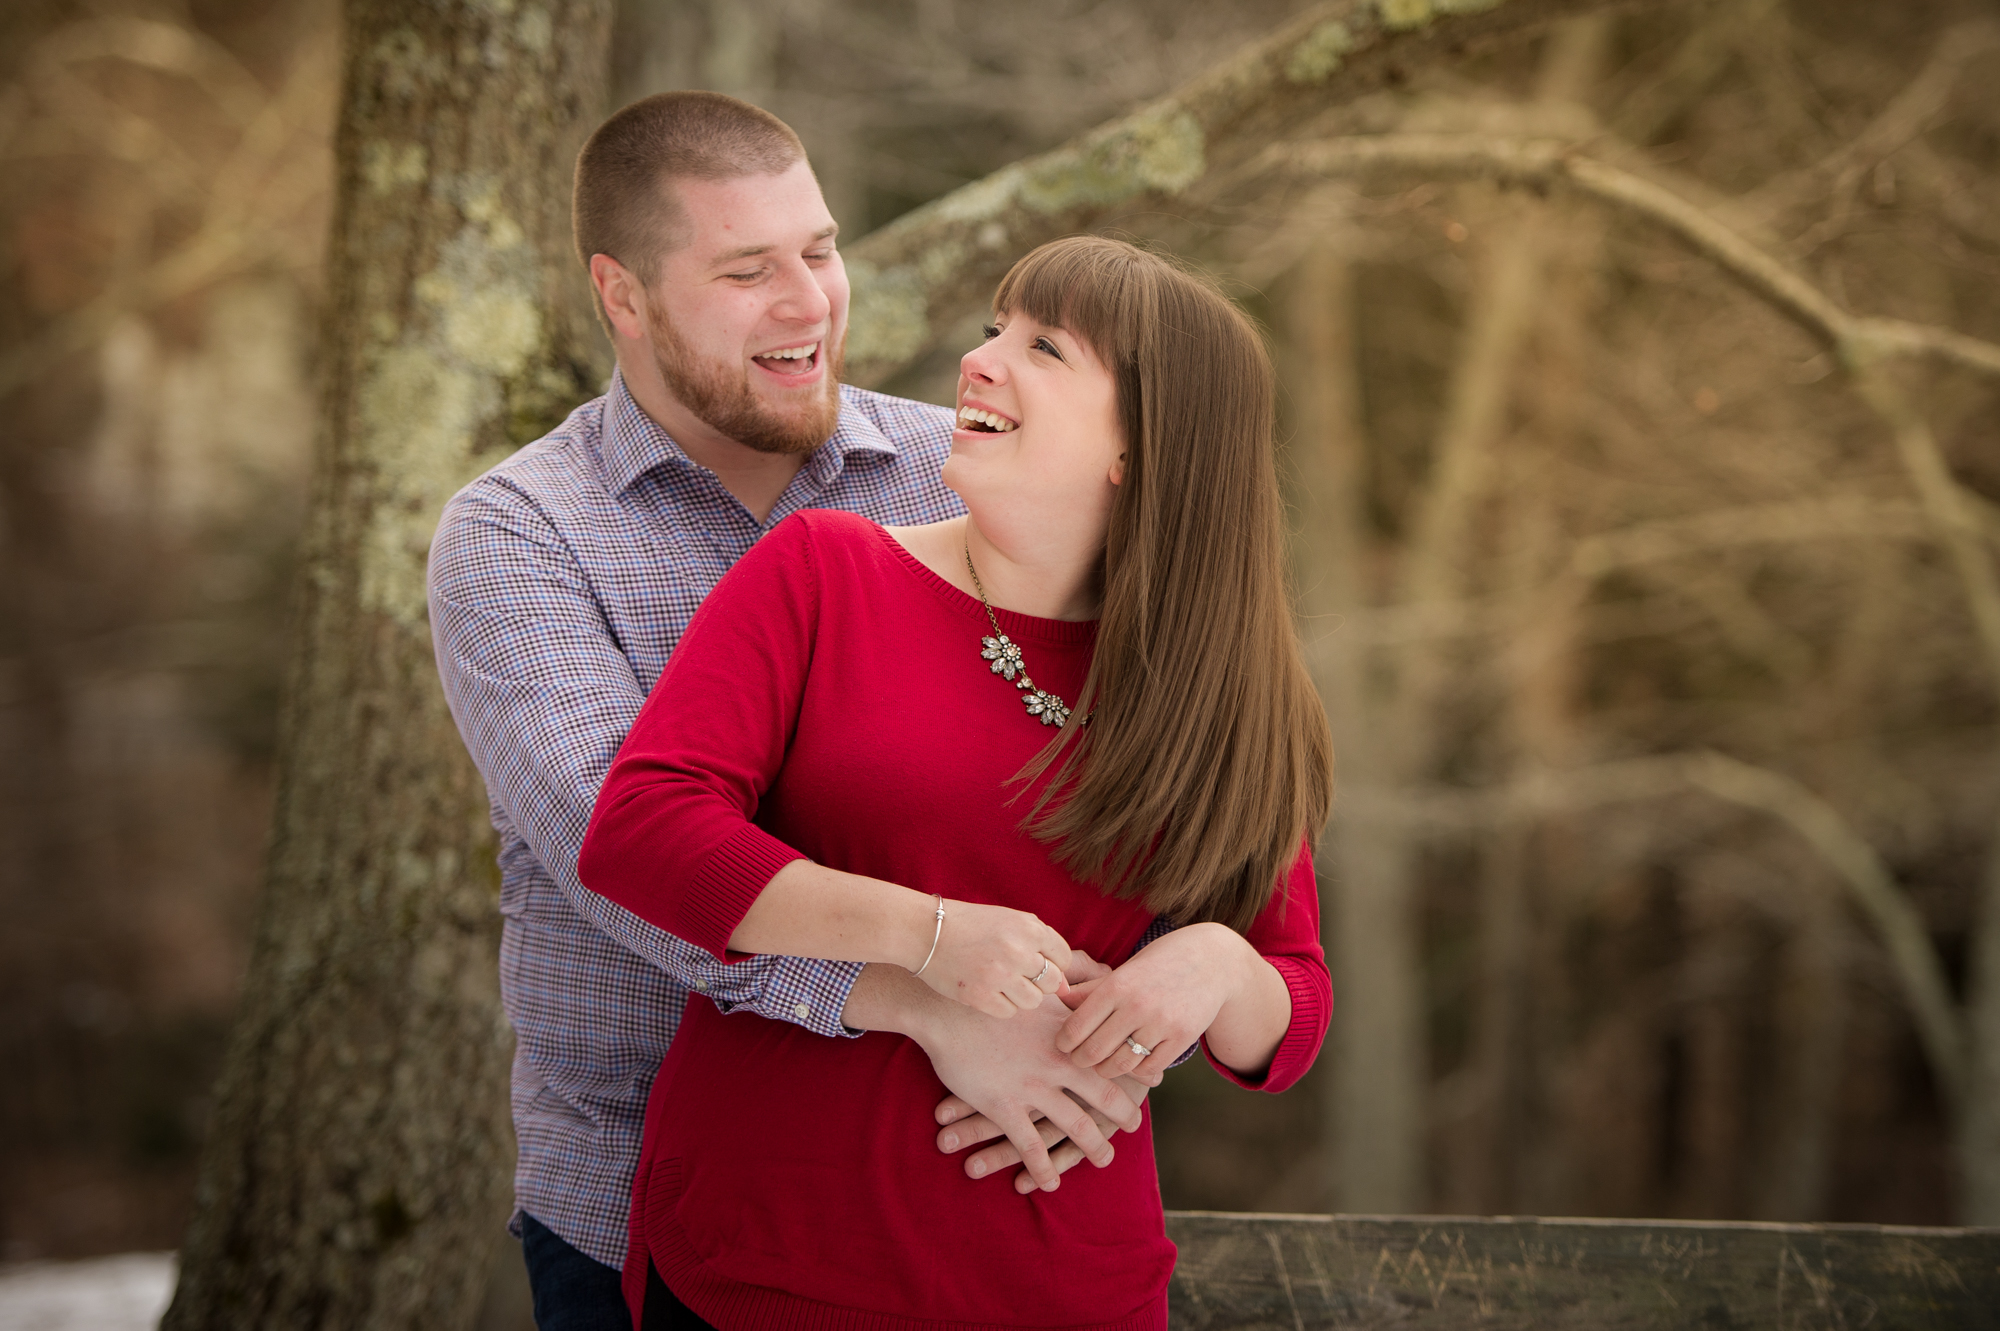 southford_falls_engagement-0002.jpg